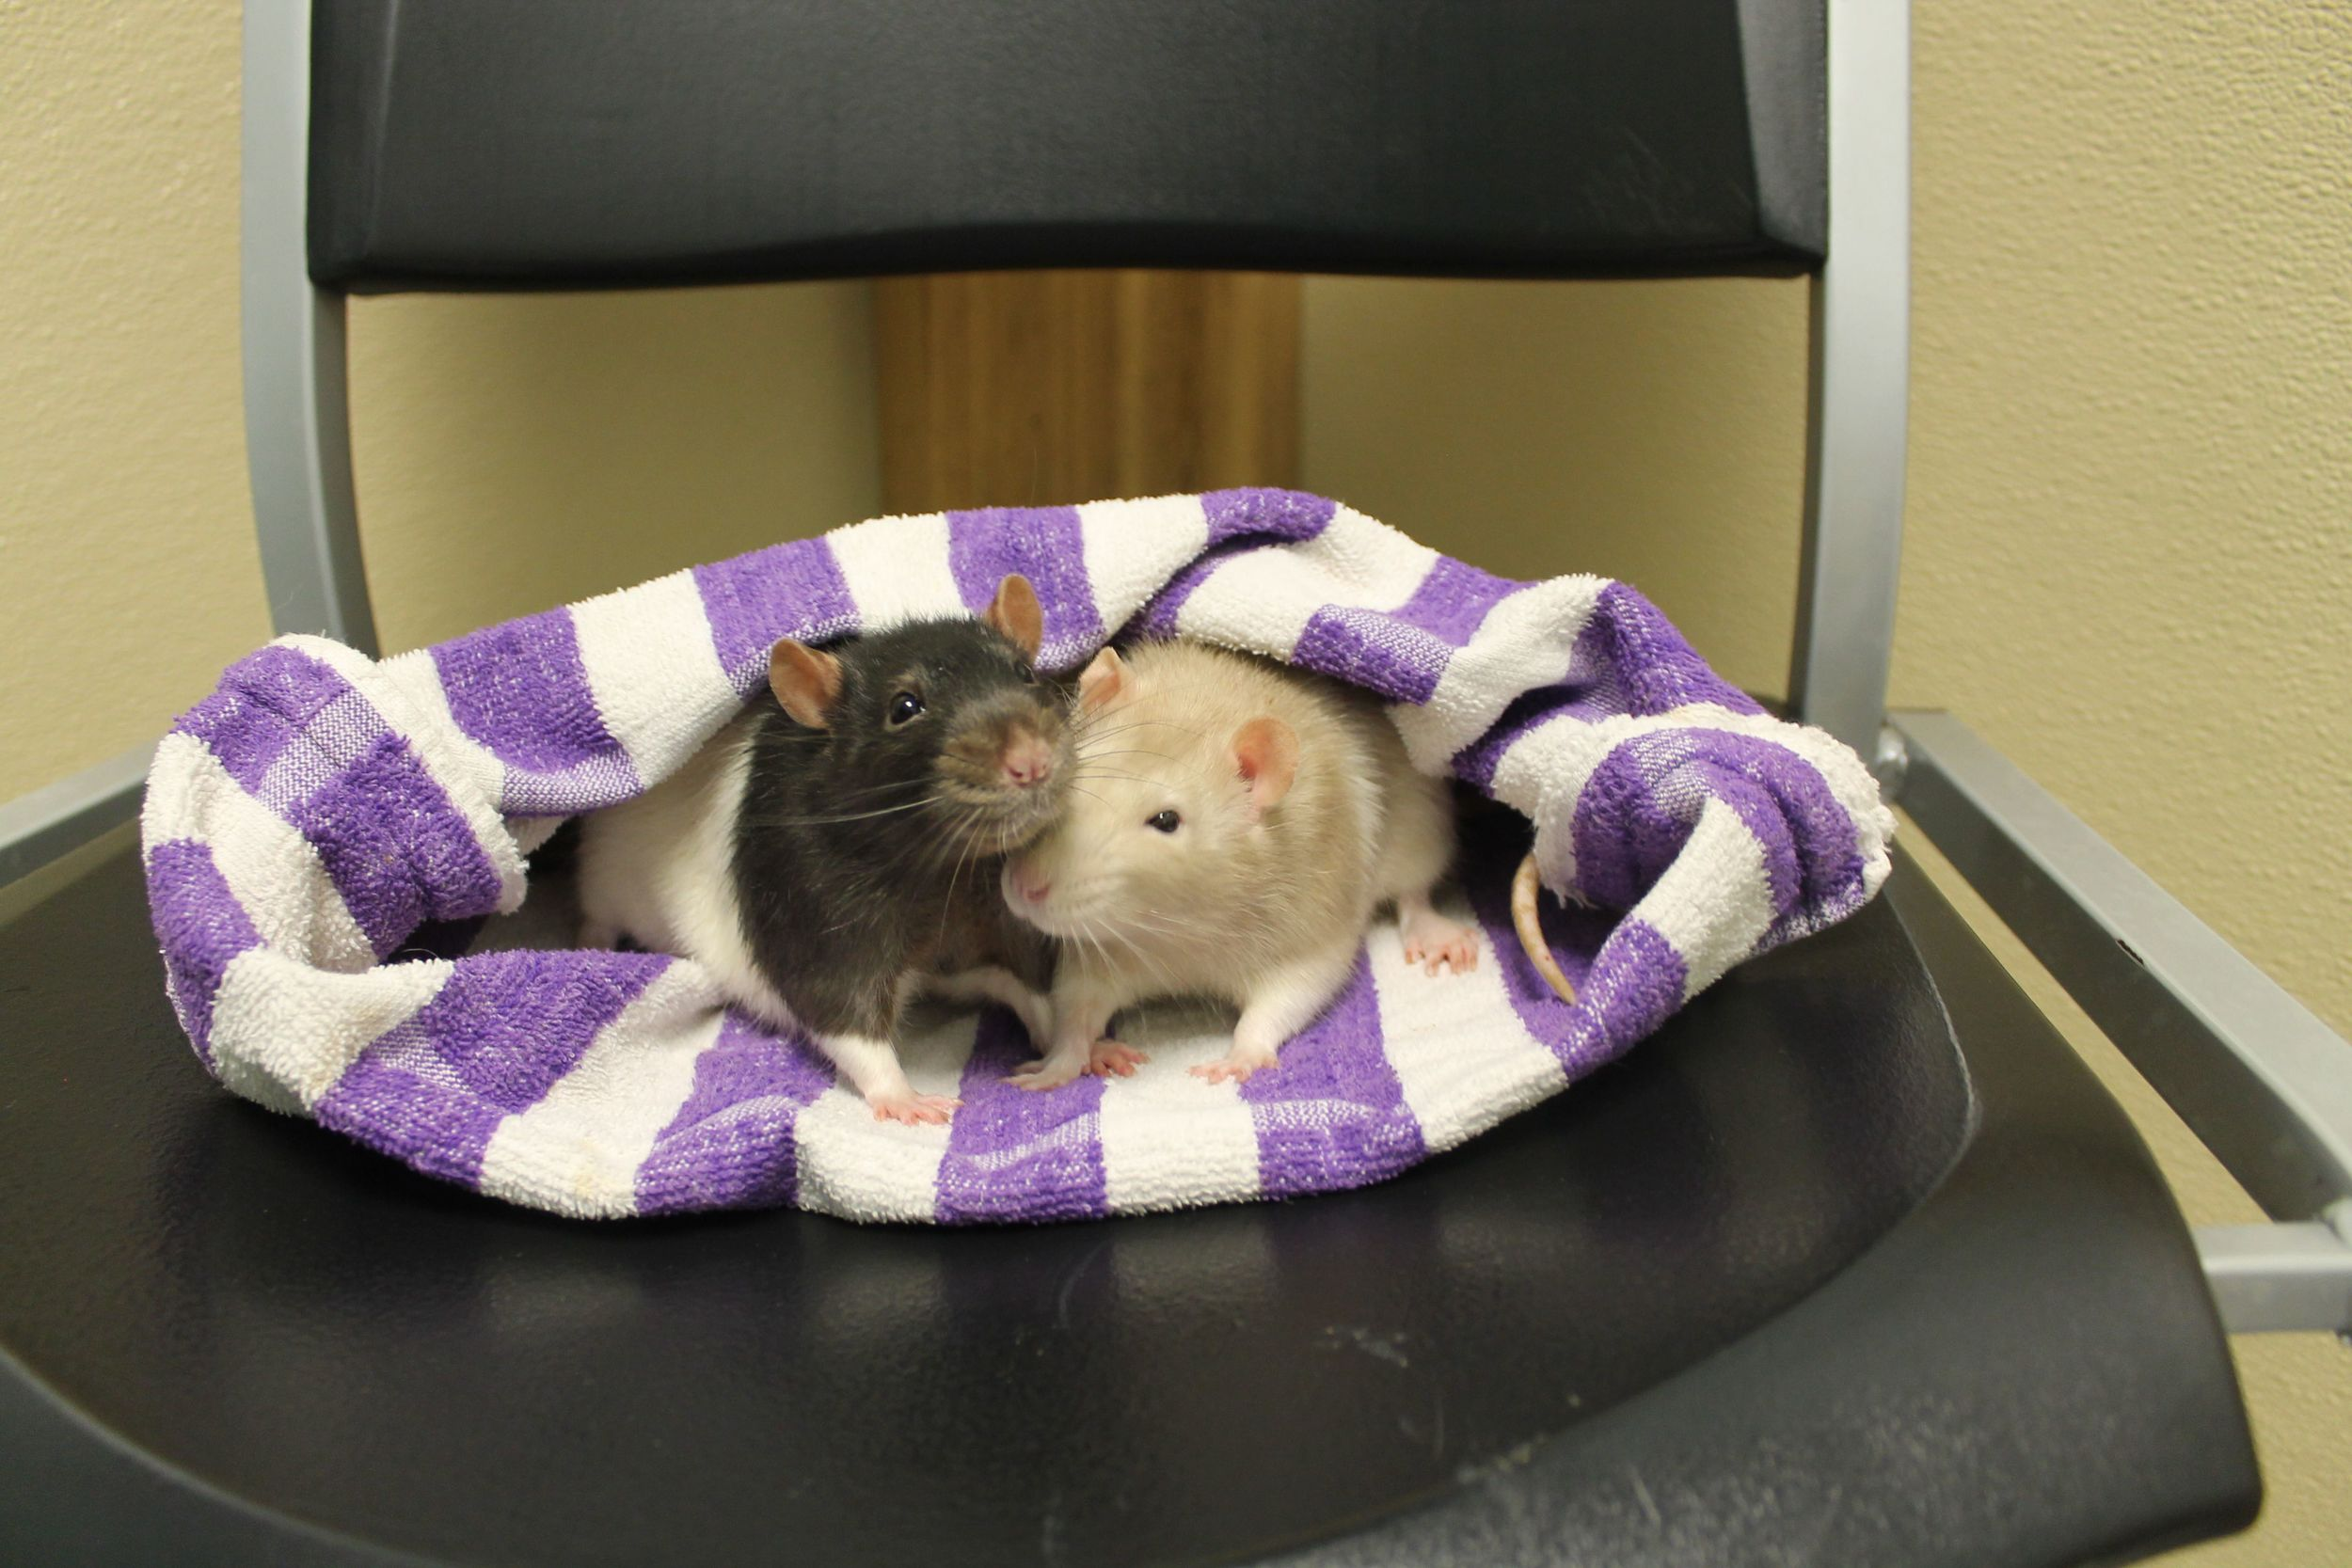 Louie and Nesta are a sweet pair of bonded rats! They are both very social, loving, and gentle. They love to have their heads pet and enjoy interacting with you. They will bring lots of happiness to your home and will become your constant companions!